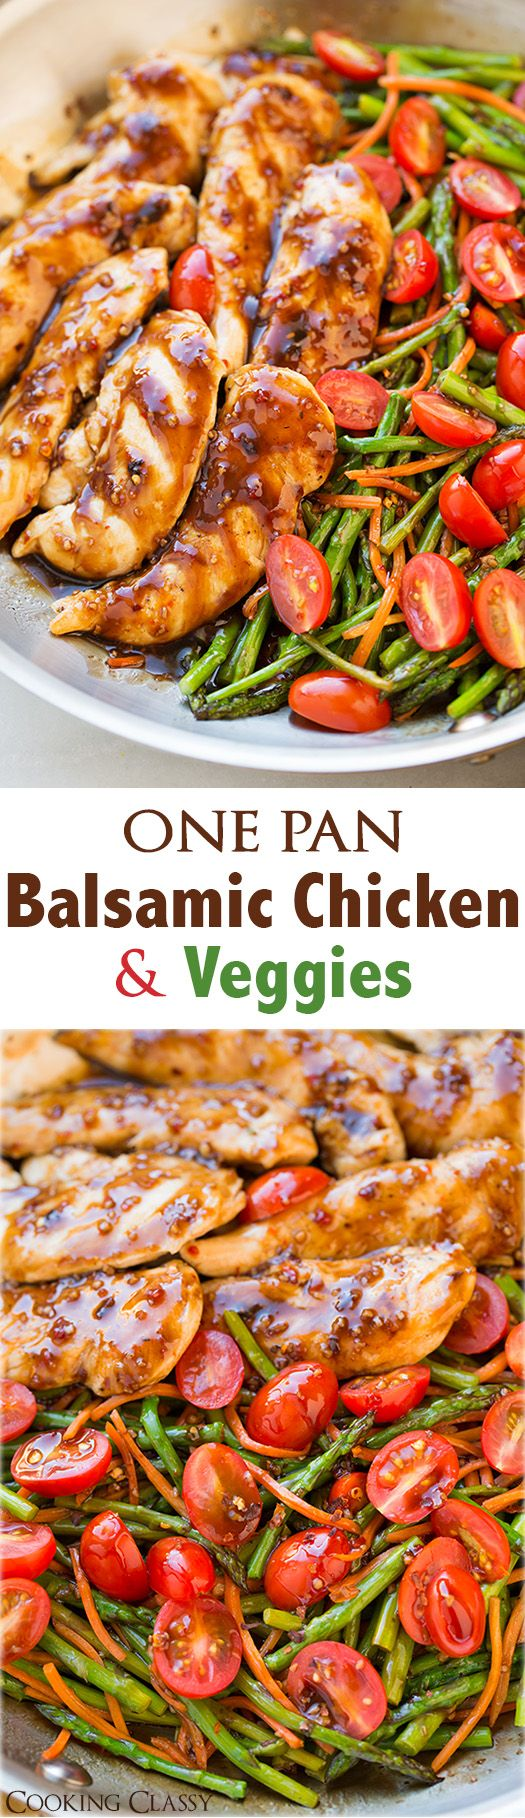 One Pan Balsamic Chicken & Veggies - 4 Hour Body Diet Recipe